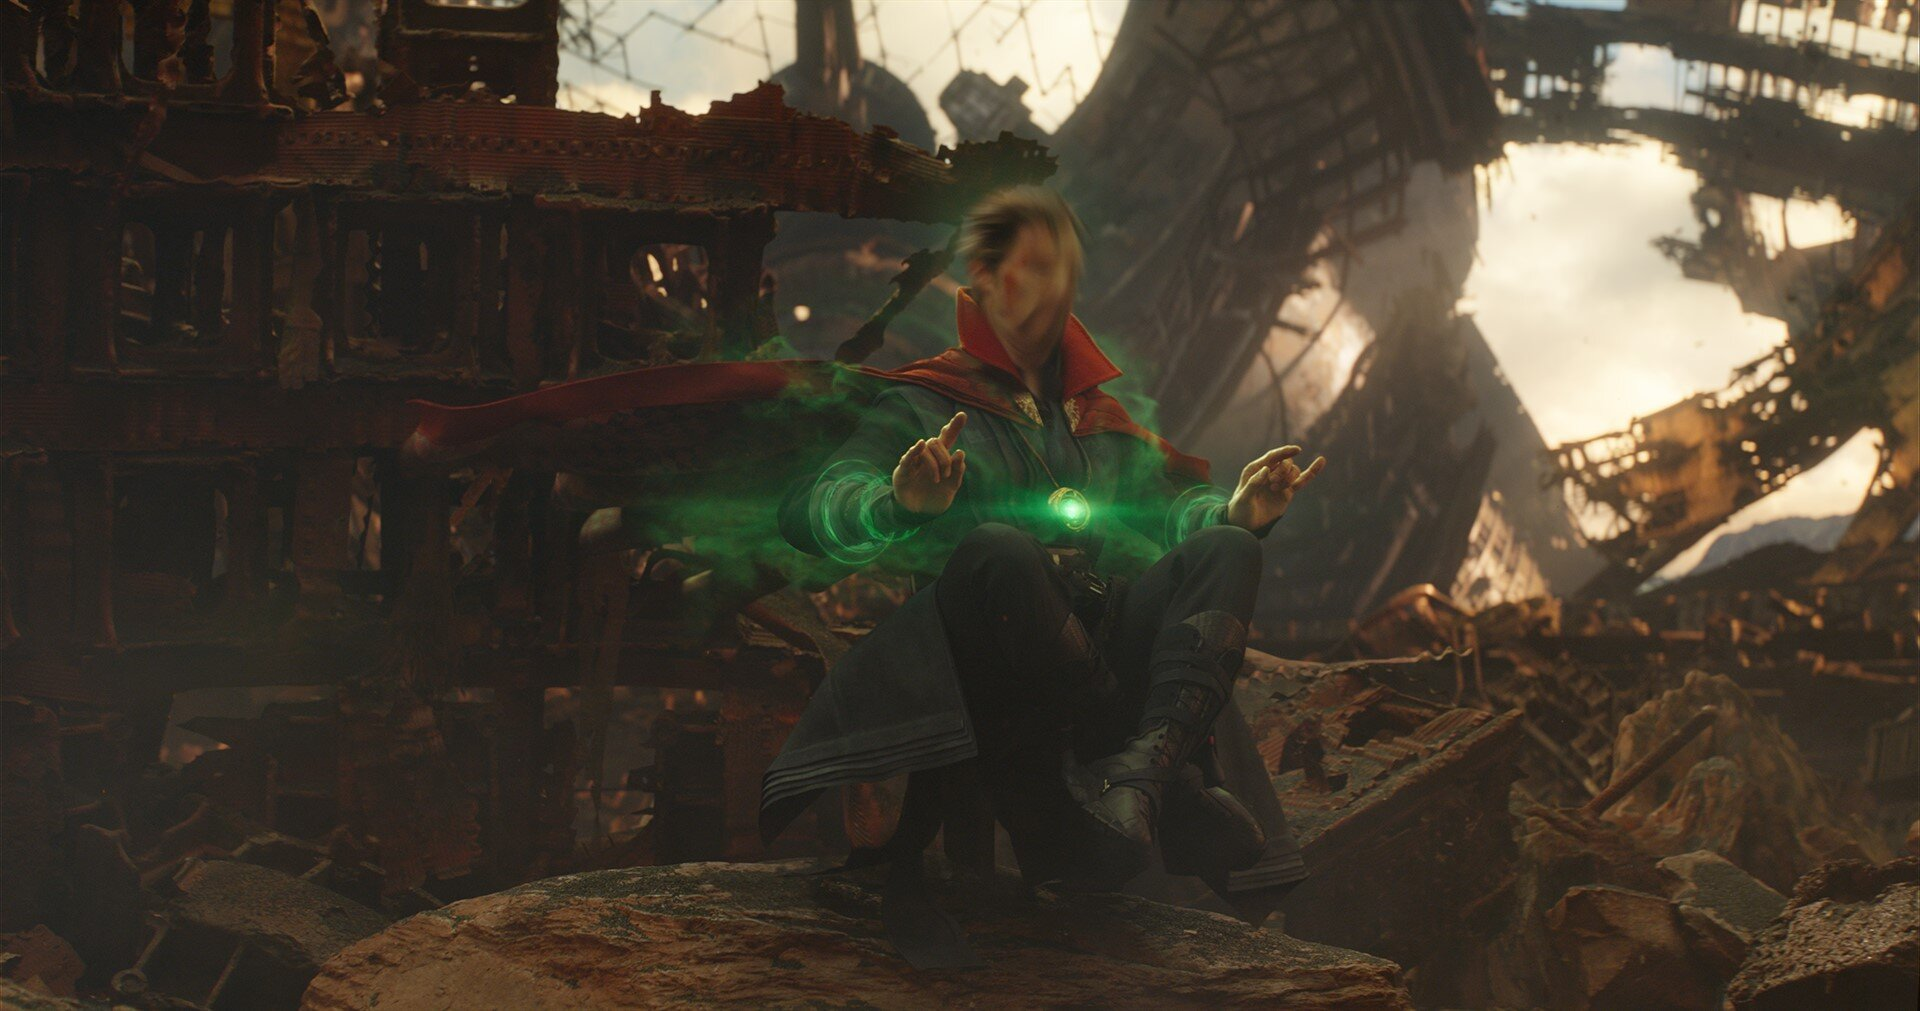 Eddy was used to create Dr. Strange's time warp effect, providing the Time Stone simulation and rendering.